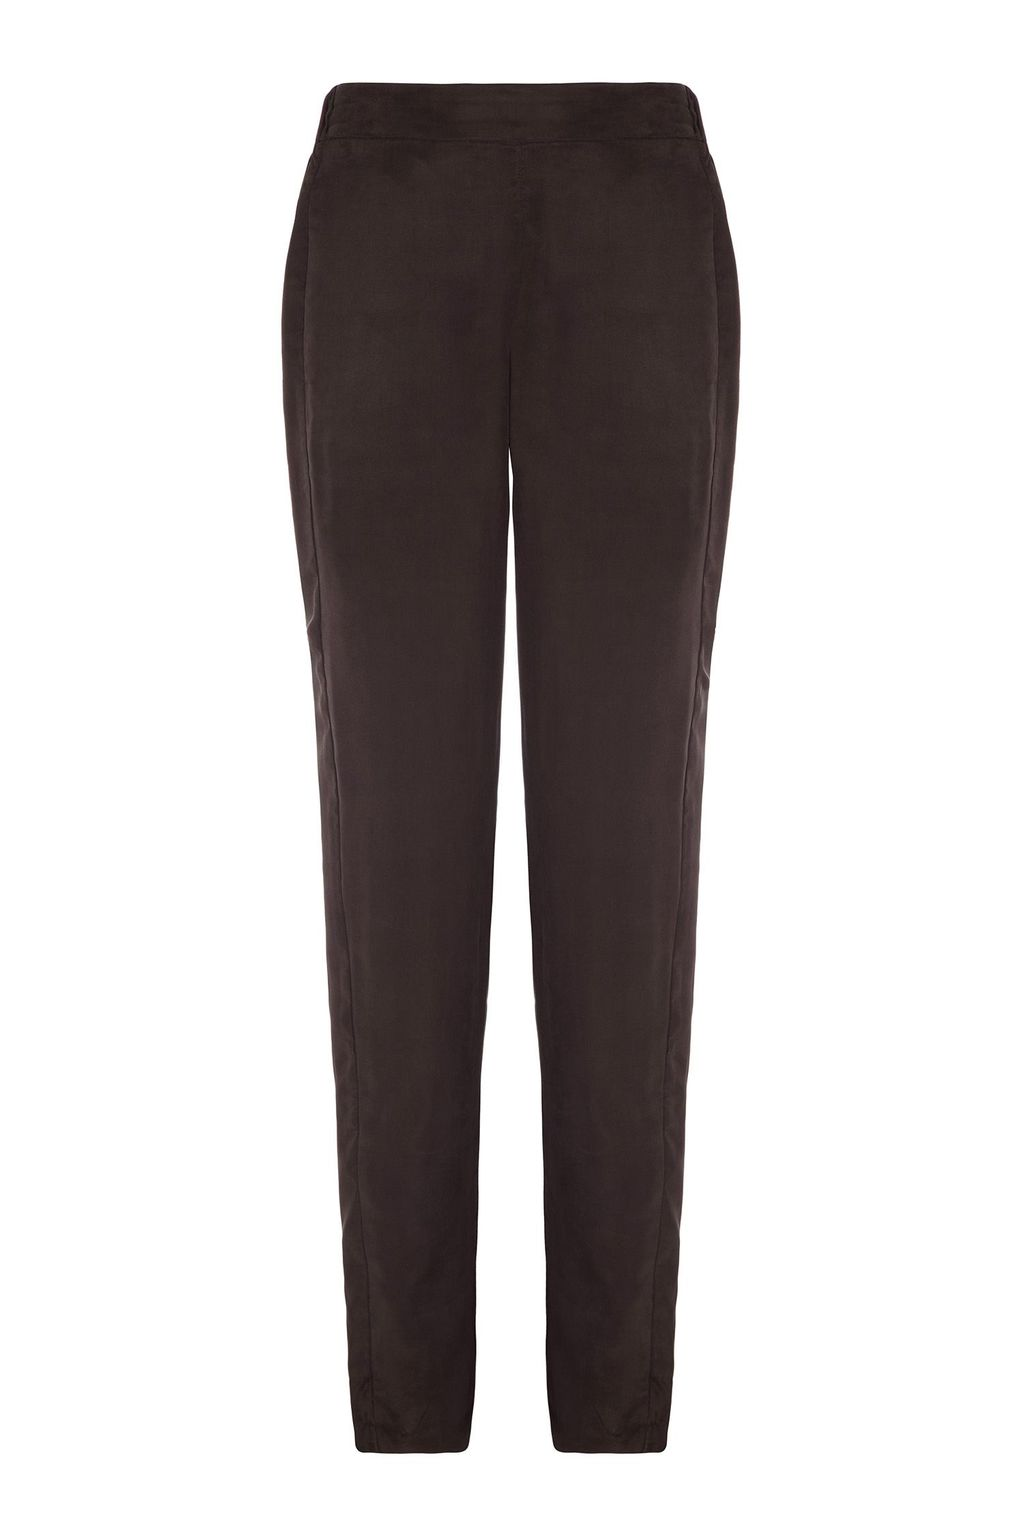 Nero Trouser, Black - pattern: plain; style: peg leg; waist: mid/regular rise; predominant colour: black; occasions: casual, evening, work, creative work; length: ankle length; fit: slim leg; pattern type: fabric; texture group: woven light midweight; season: s/s 2015; wardrobe: basic